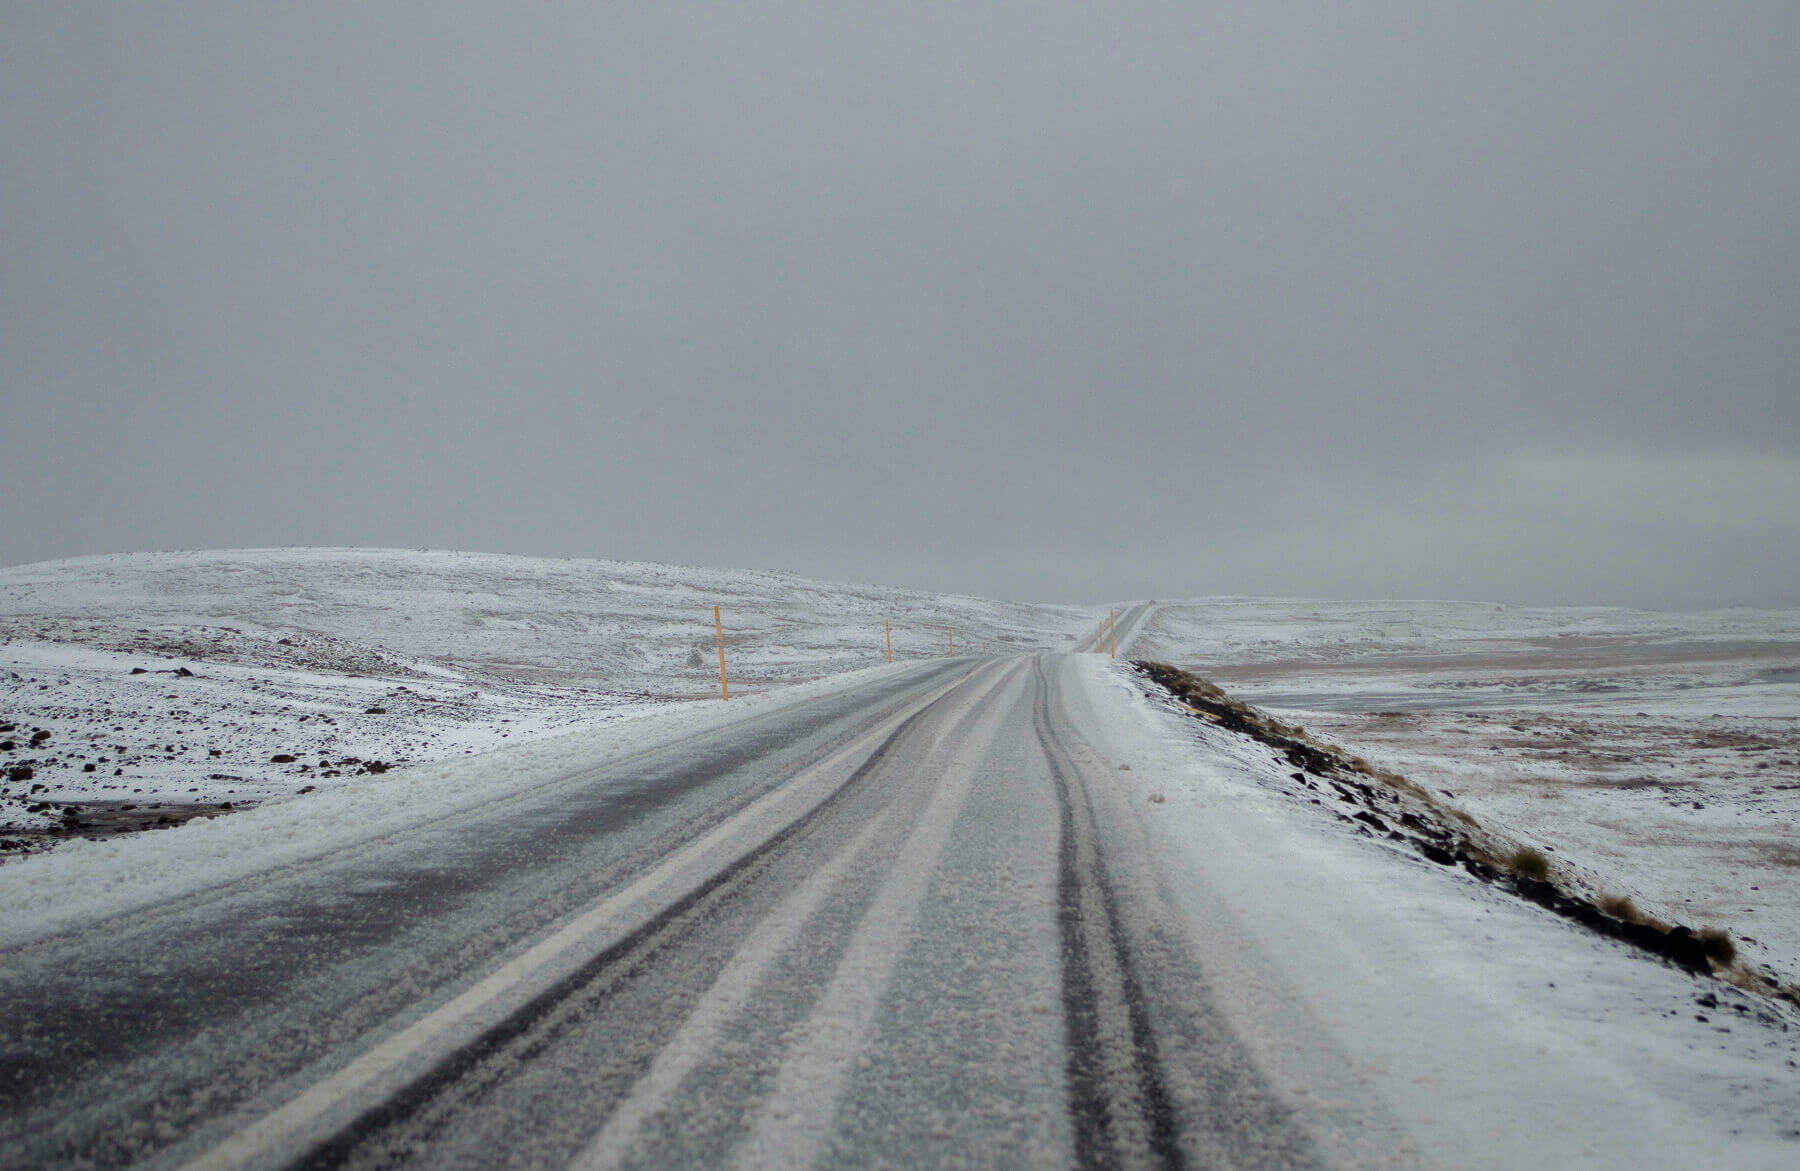 A long road covered in snow in Iceland